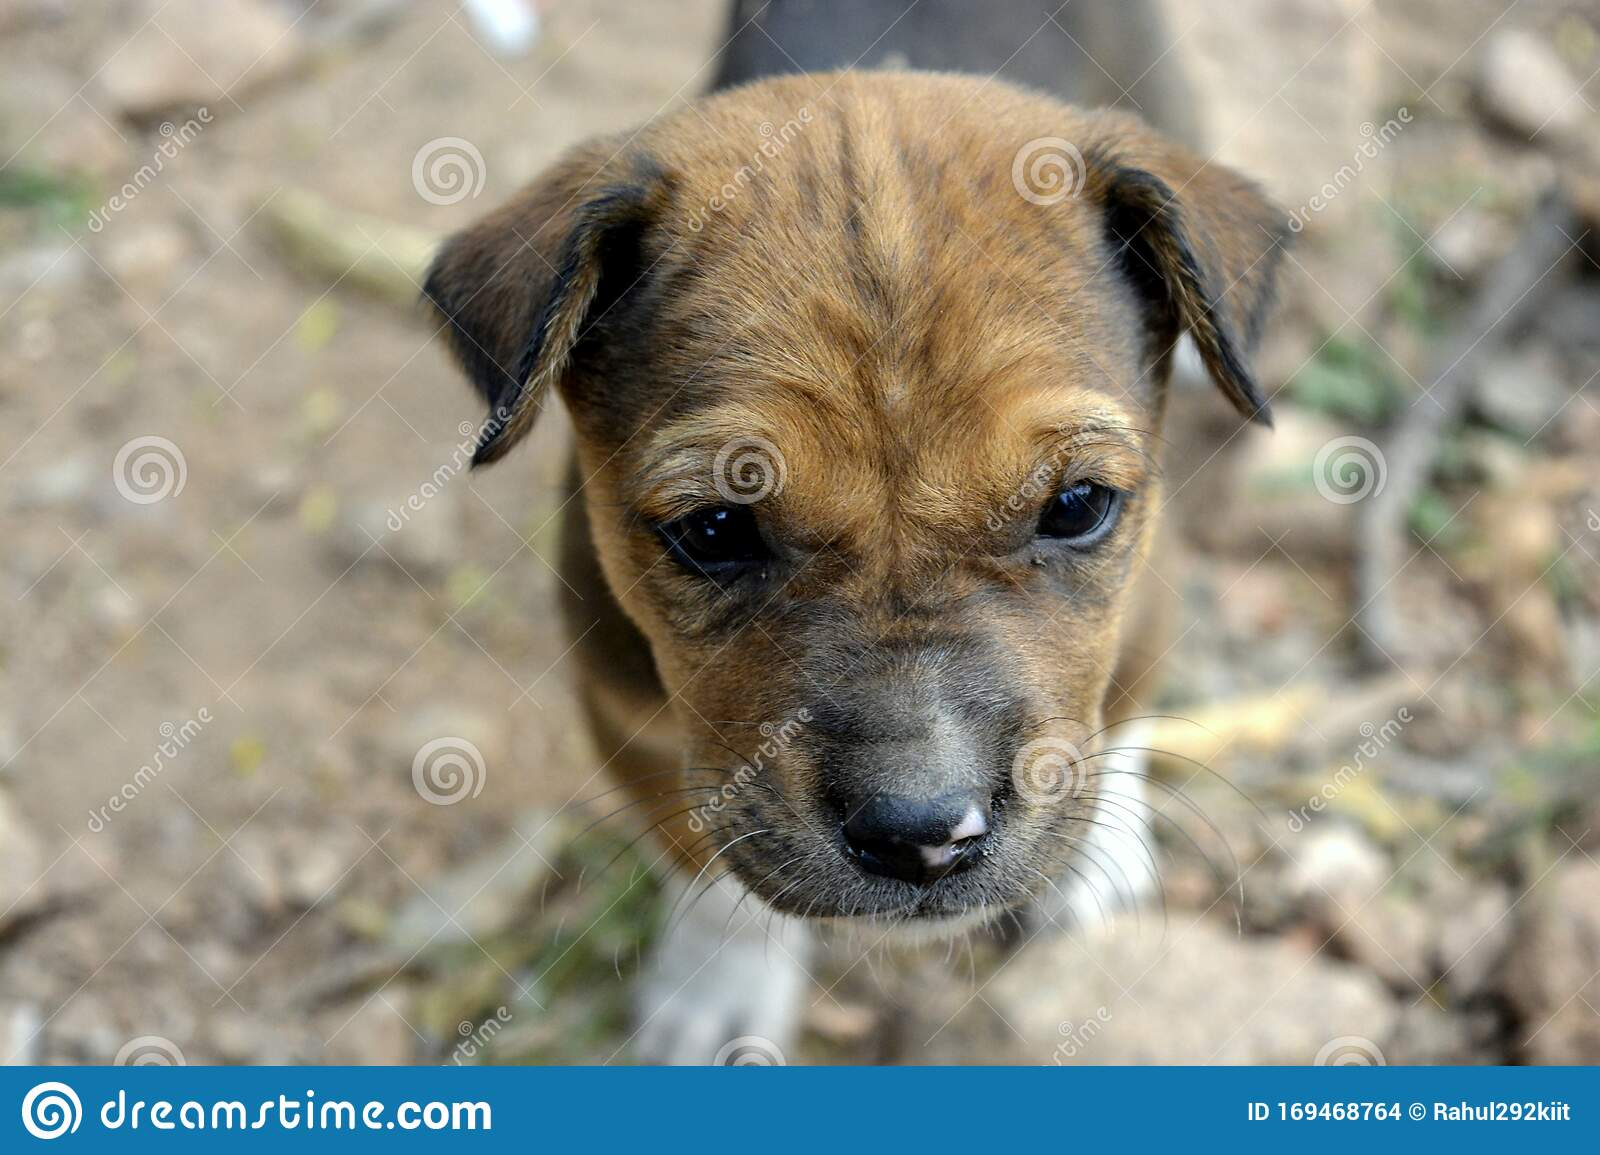 A Cute Beagle Puppy Dog Playing In The Park Stock Photo Image Of Puppy Cute 169468764